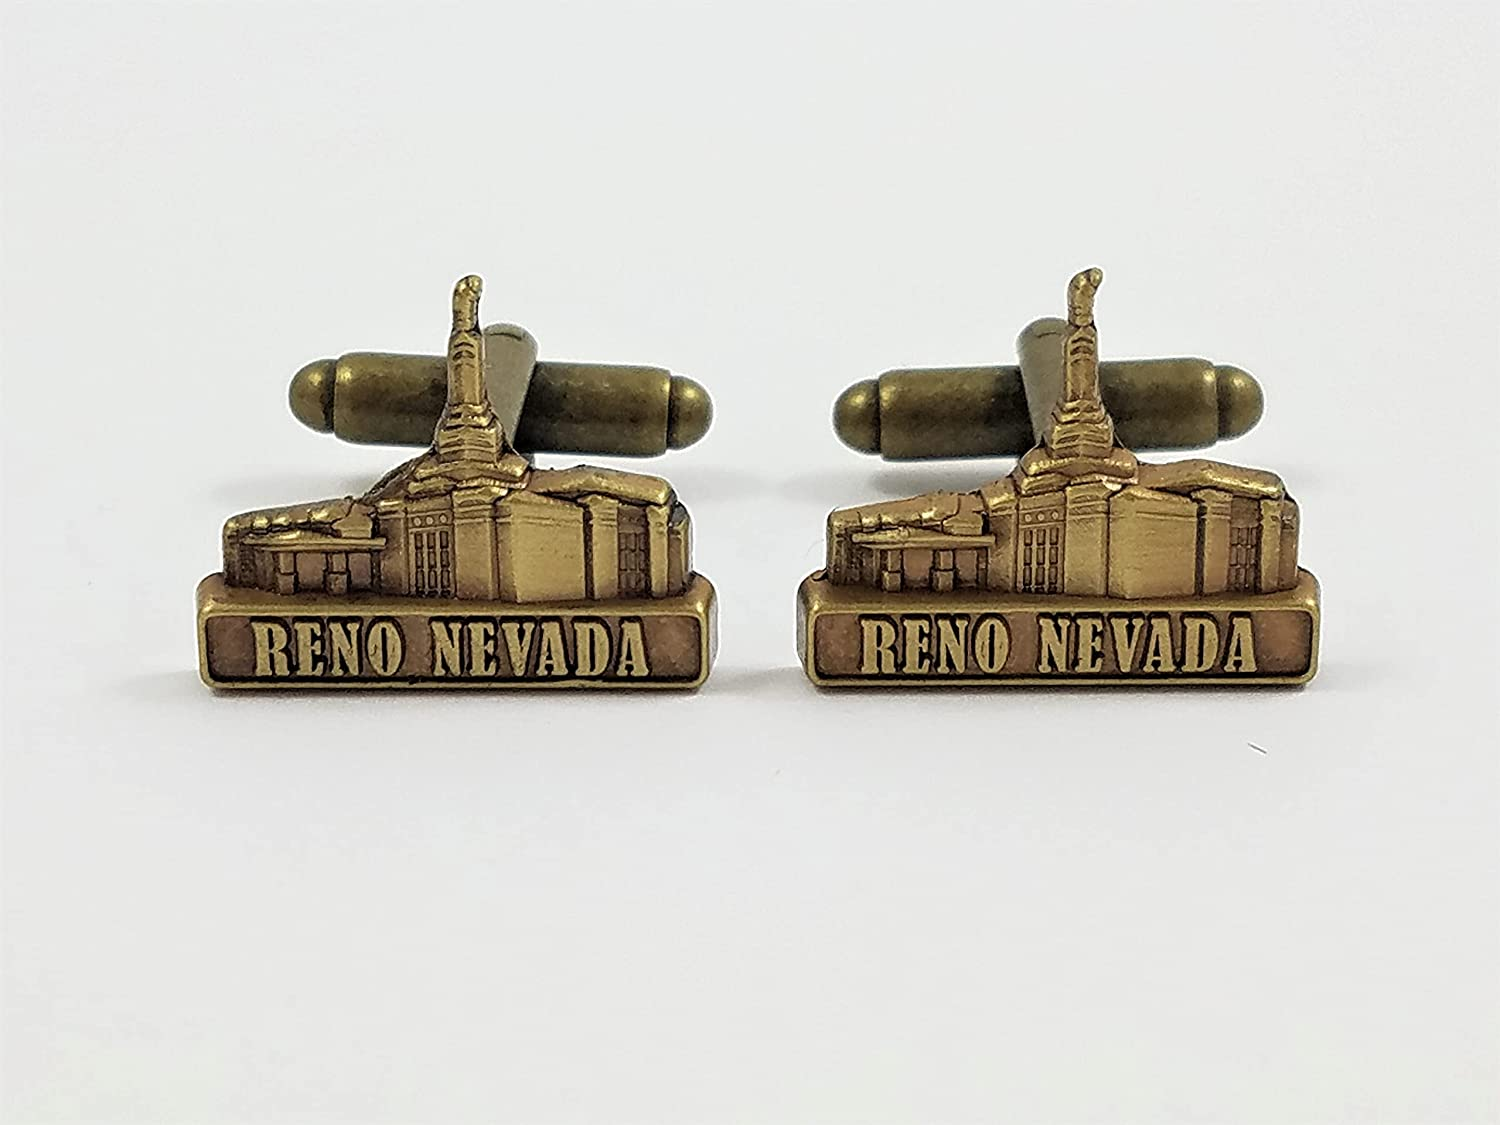 Reno Nevada SEAL limited Selling rankings product Temple Cufflinks